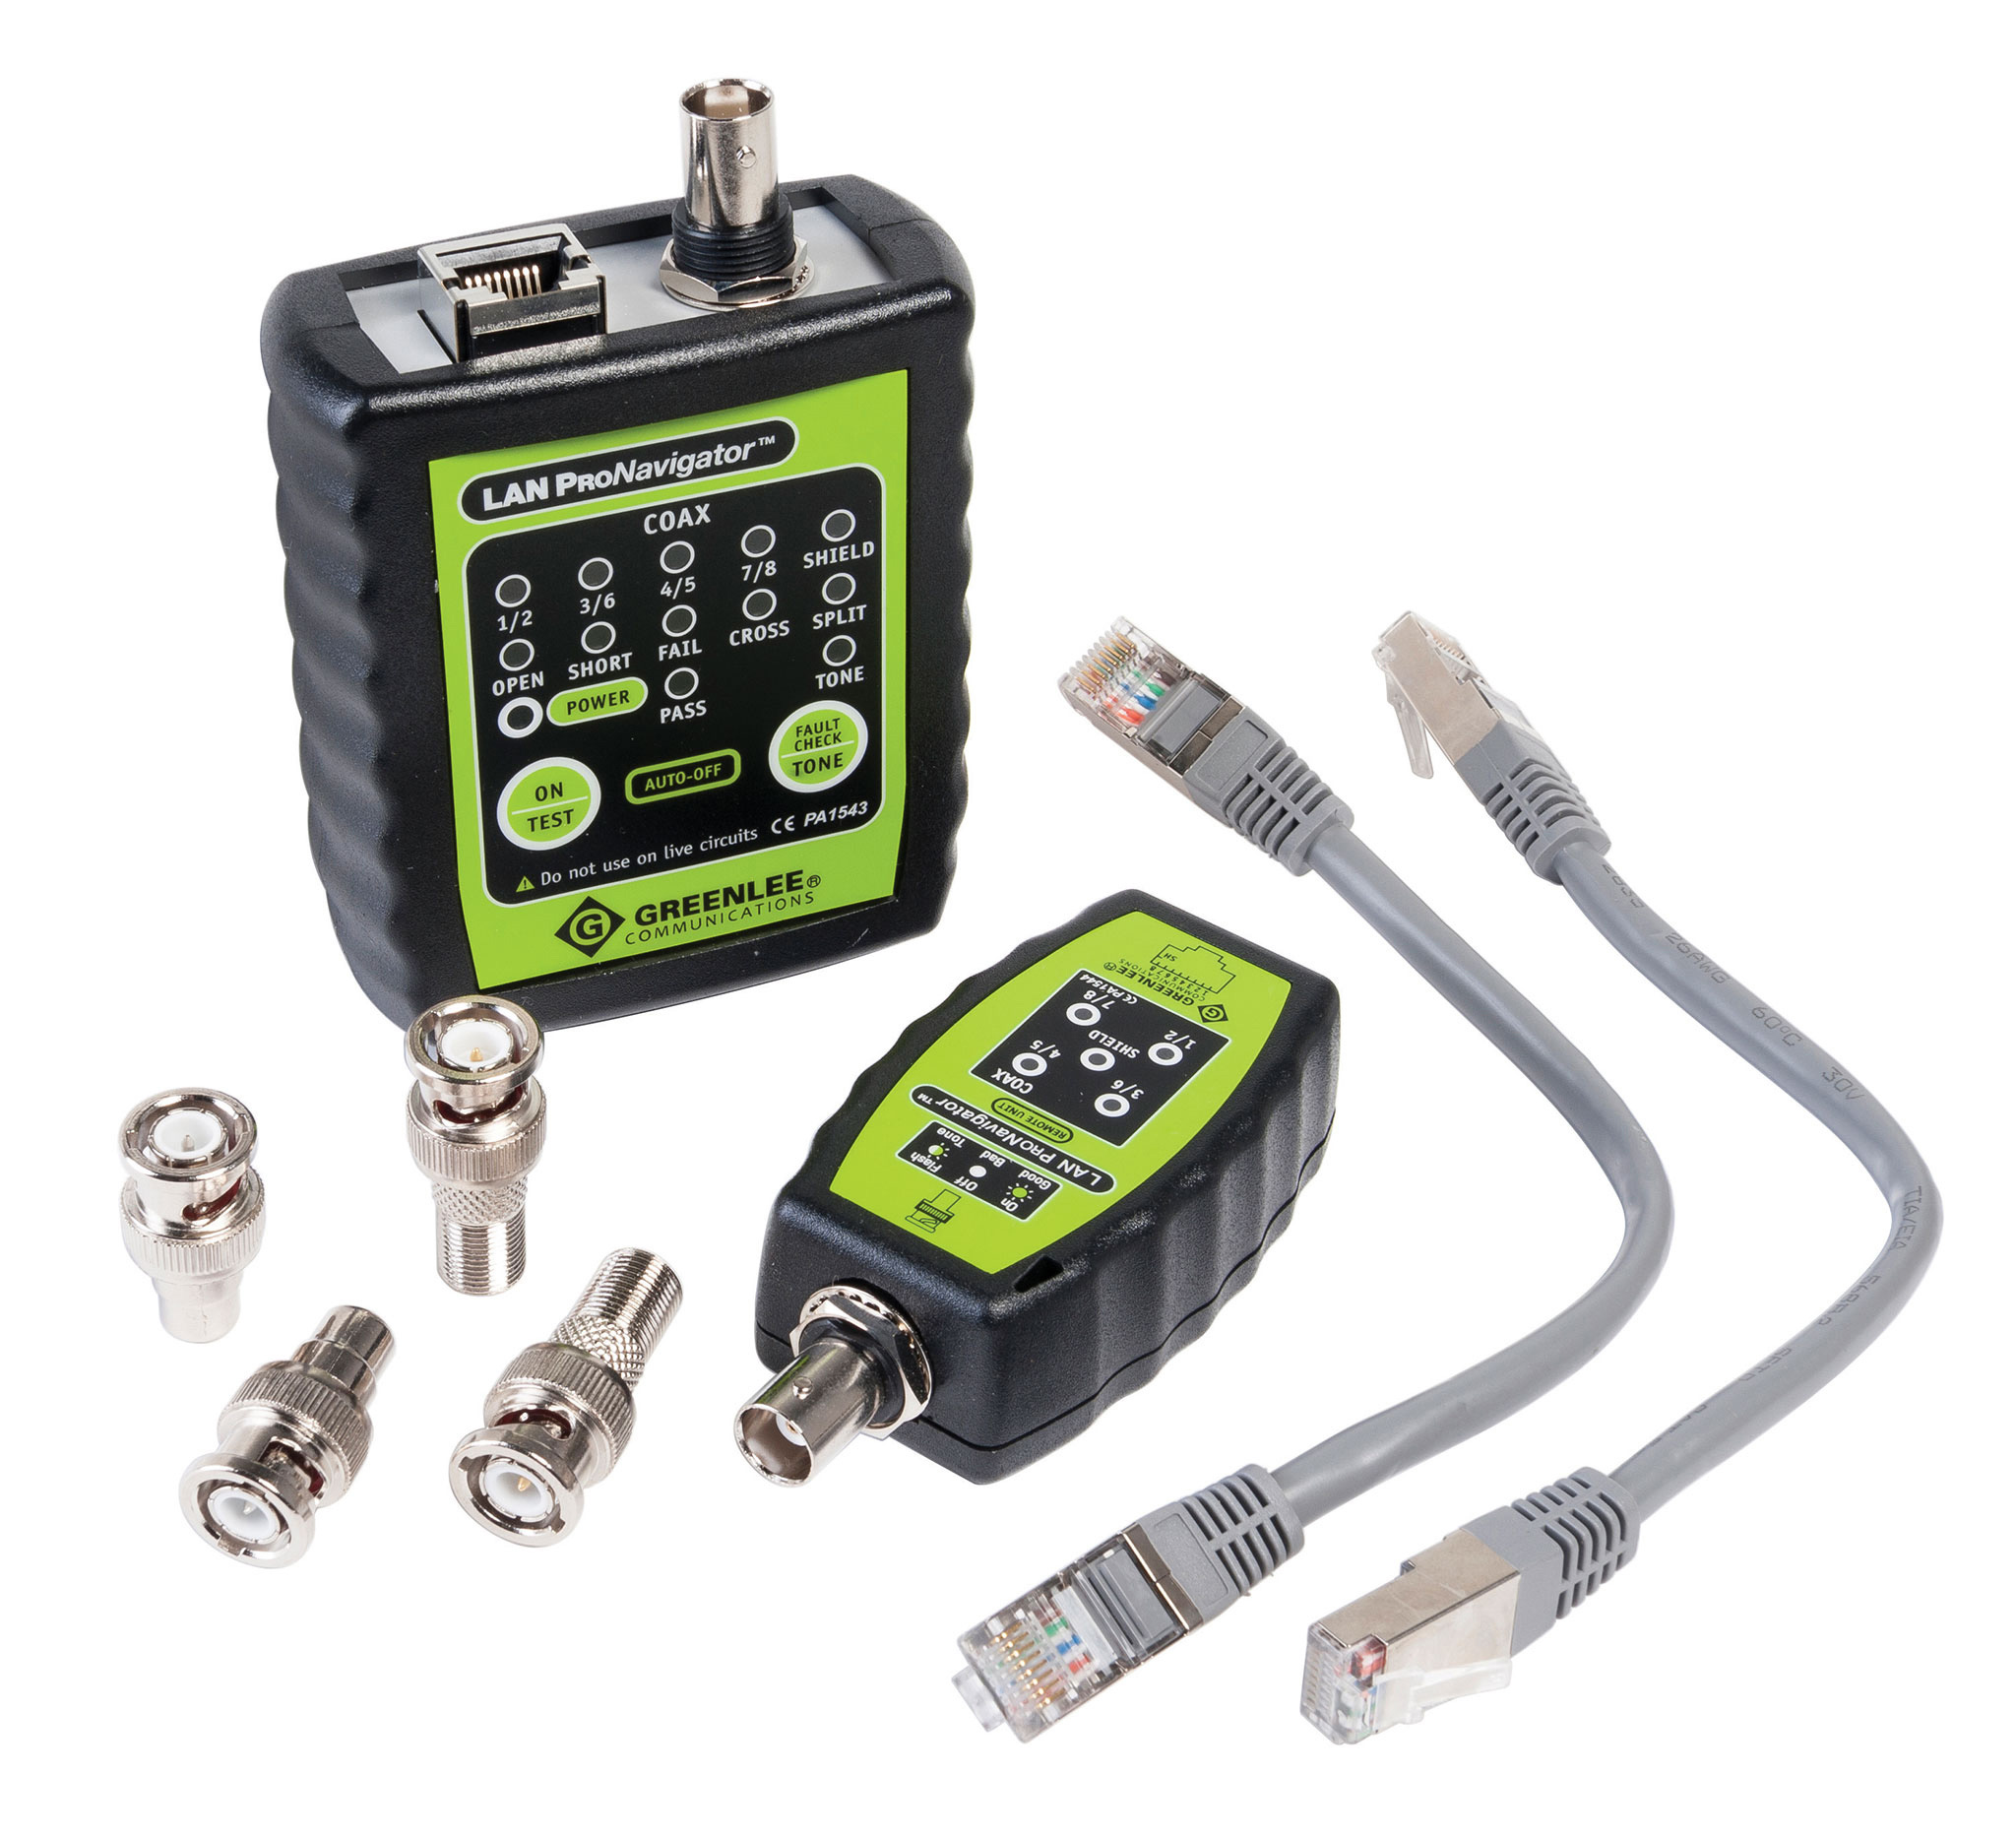 Data Cable Tester : Greenlee data and coax network cable tester